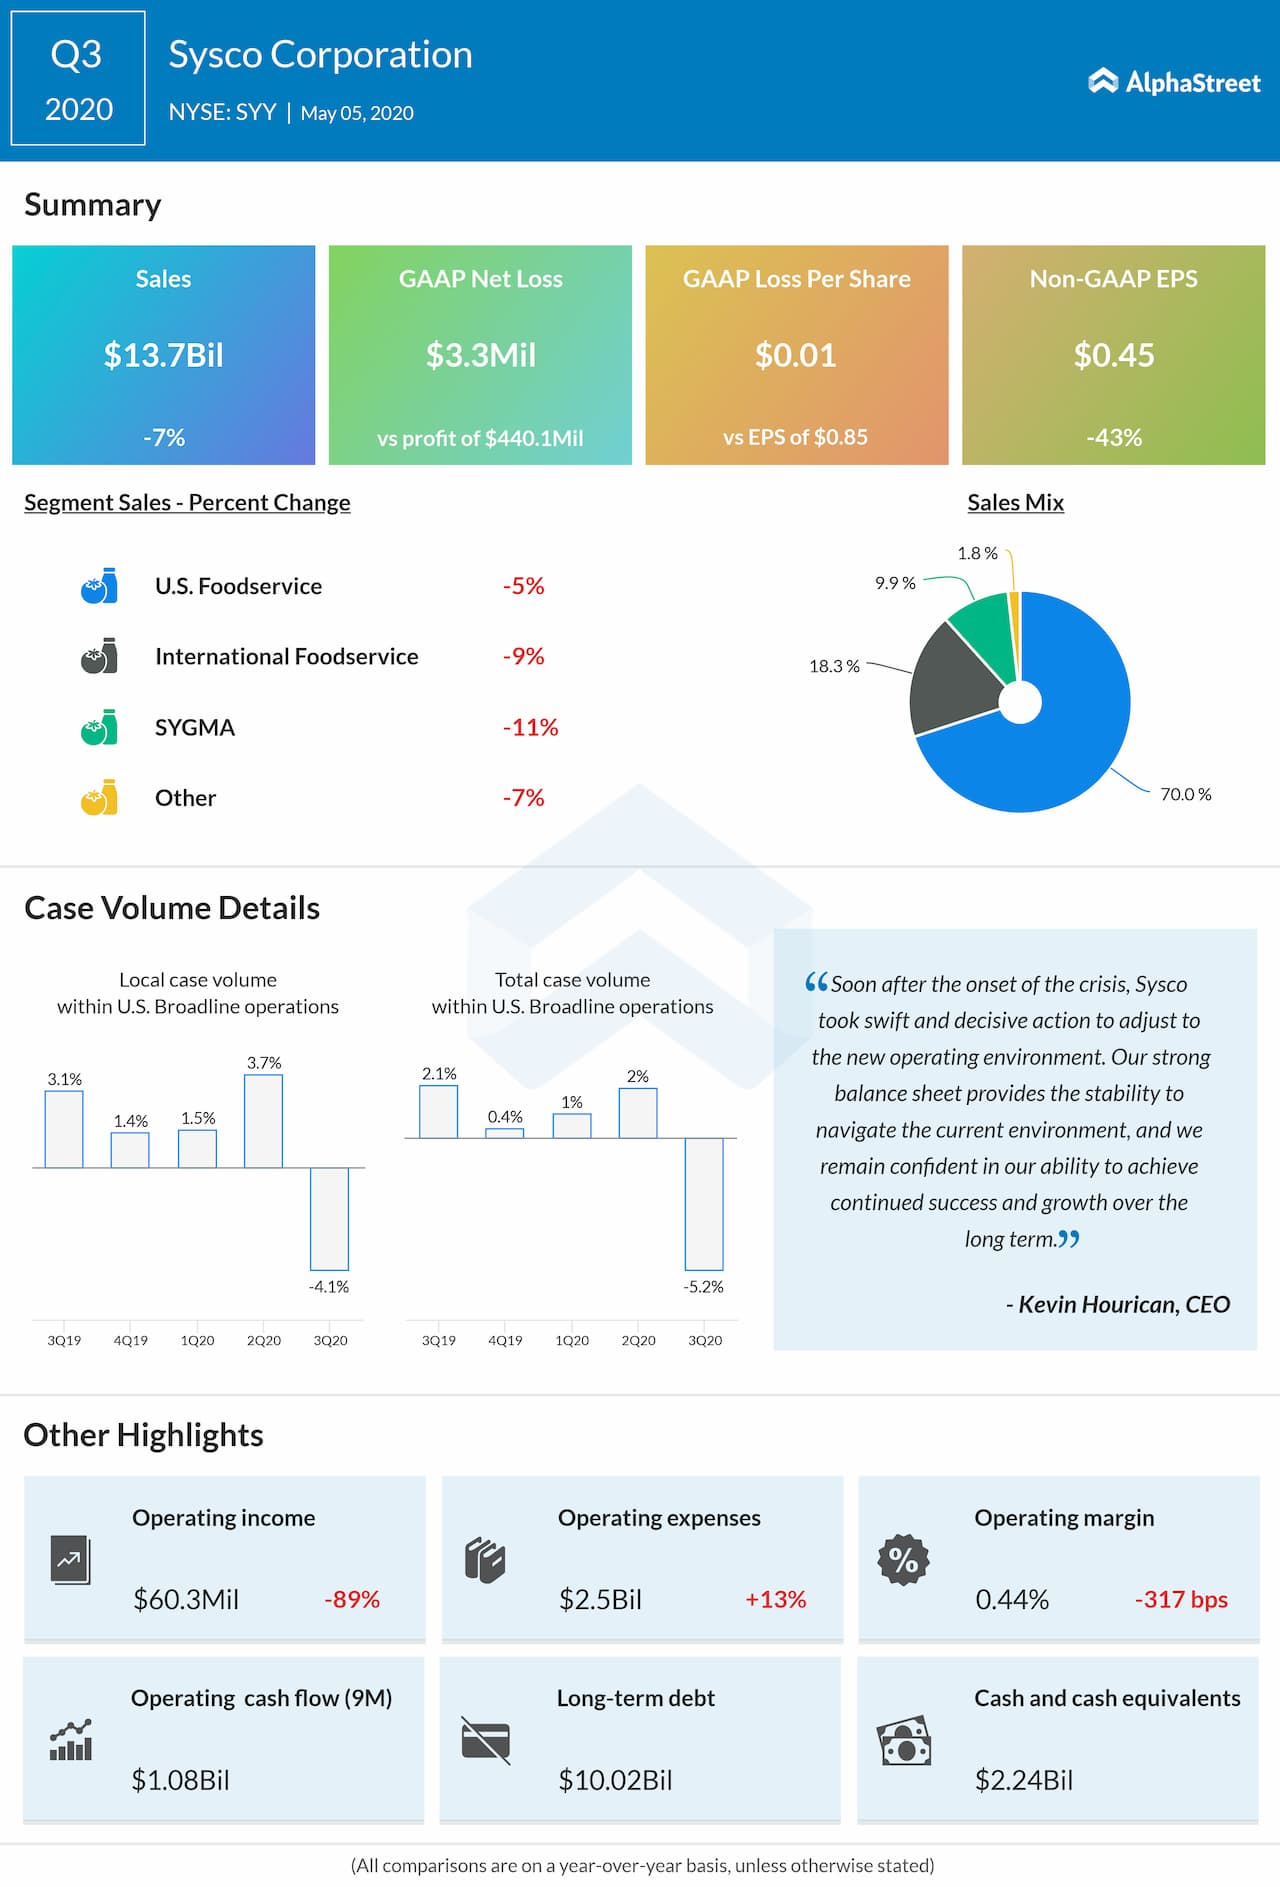 Sysco Corp. (SYY) Q3 2020 earnings review